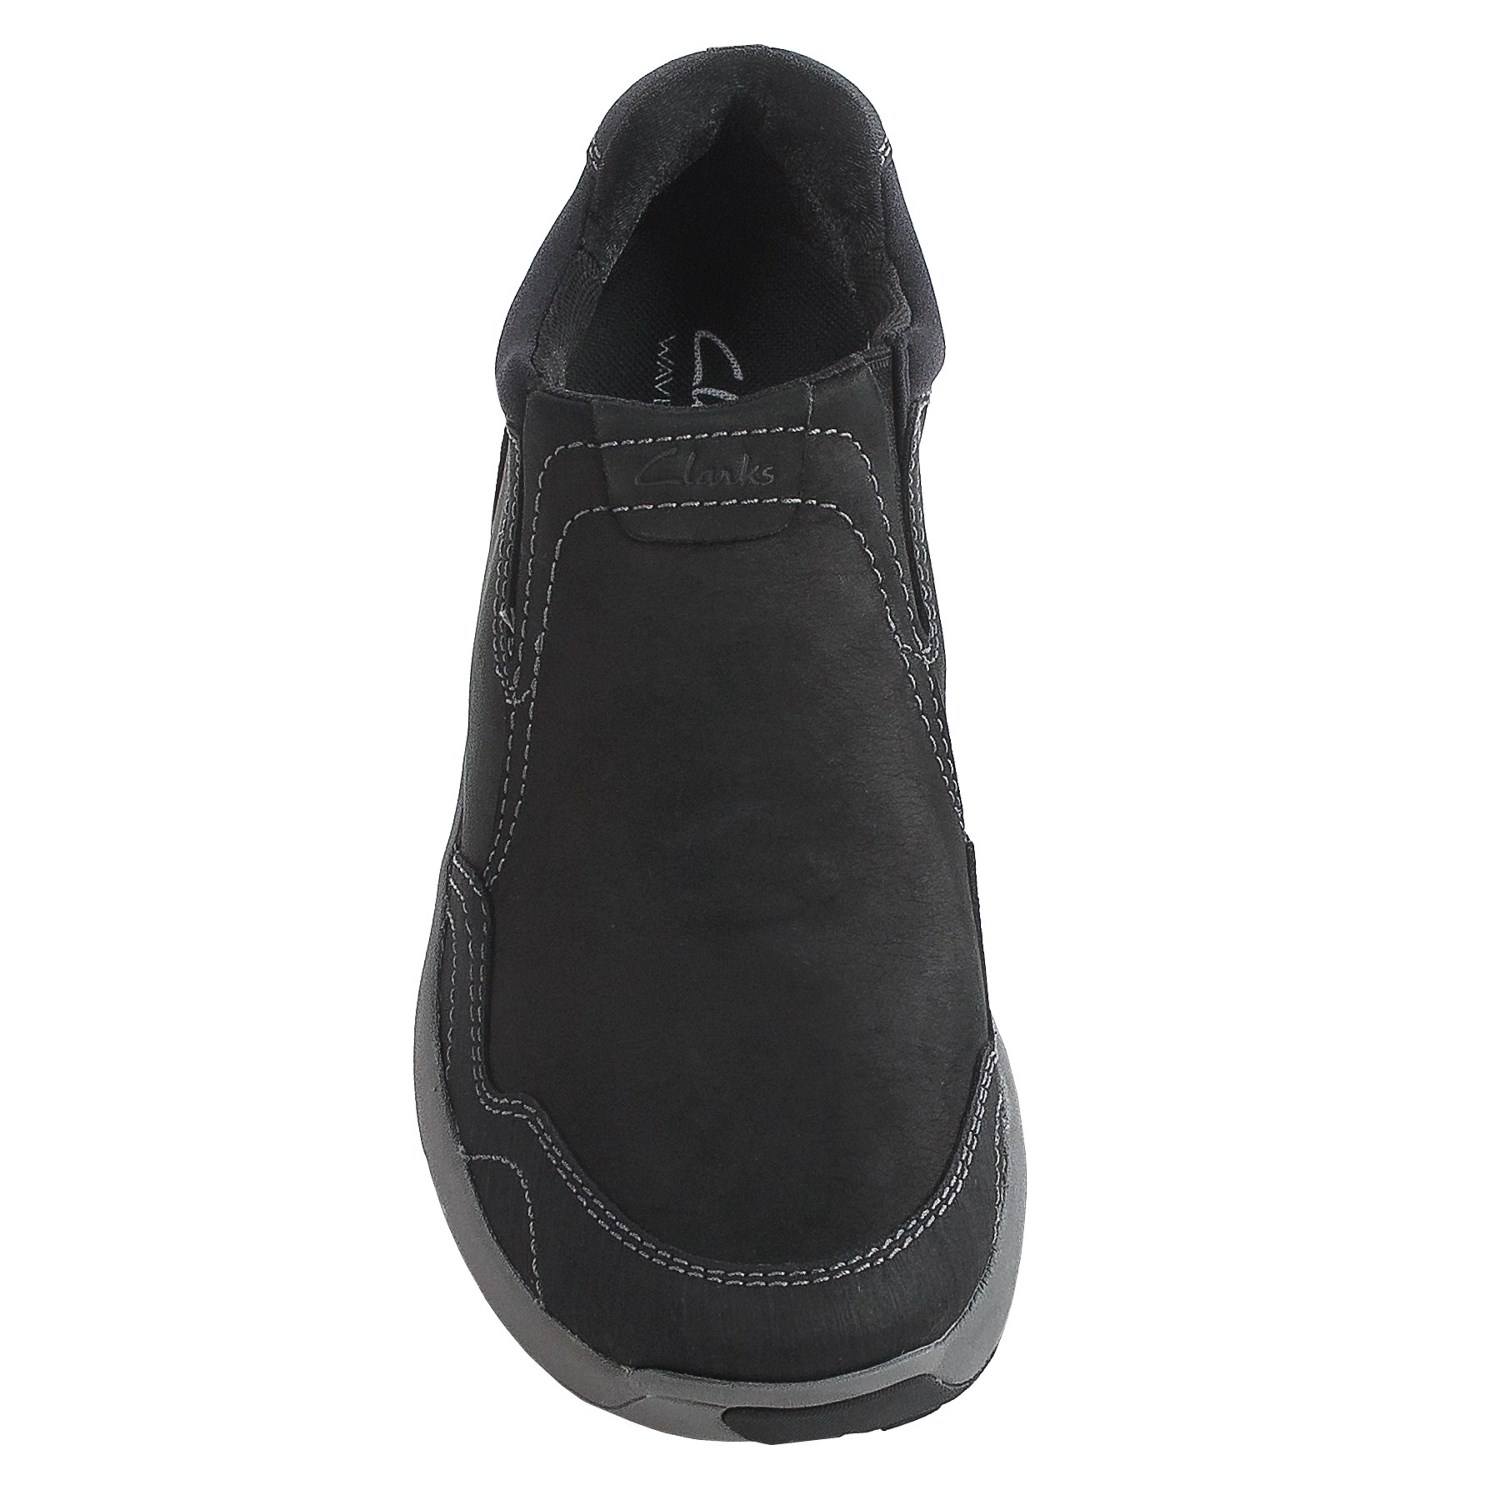 Clarks Wave Post Shoes Slip Ons For Men